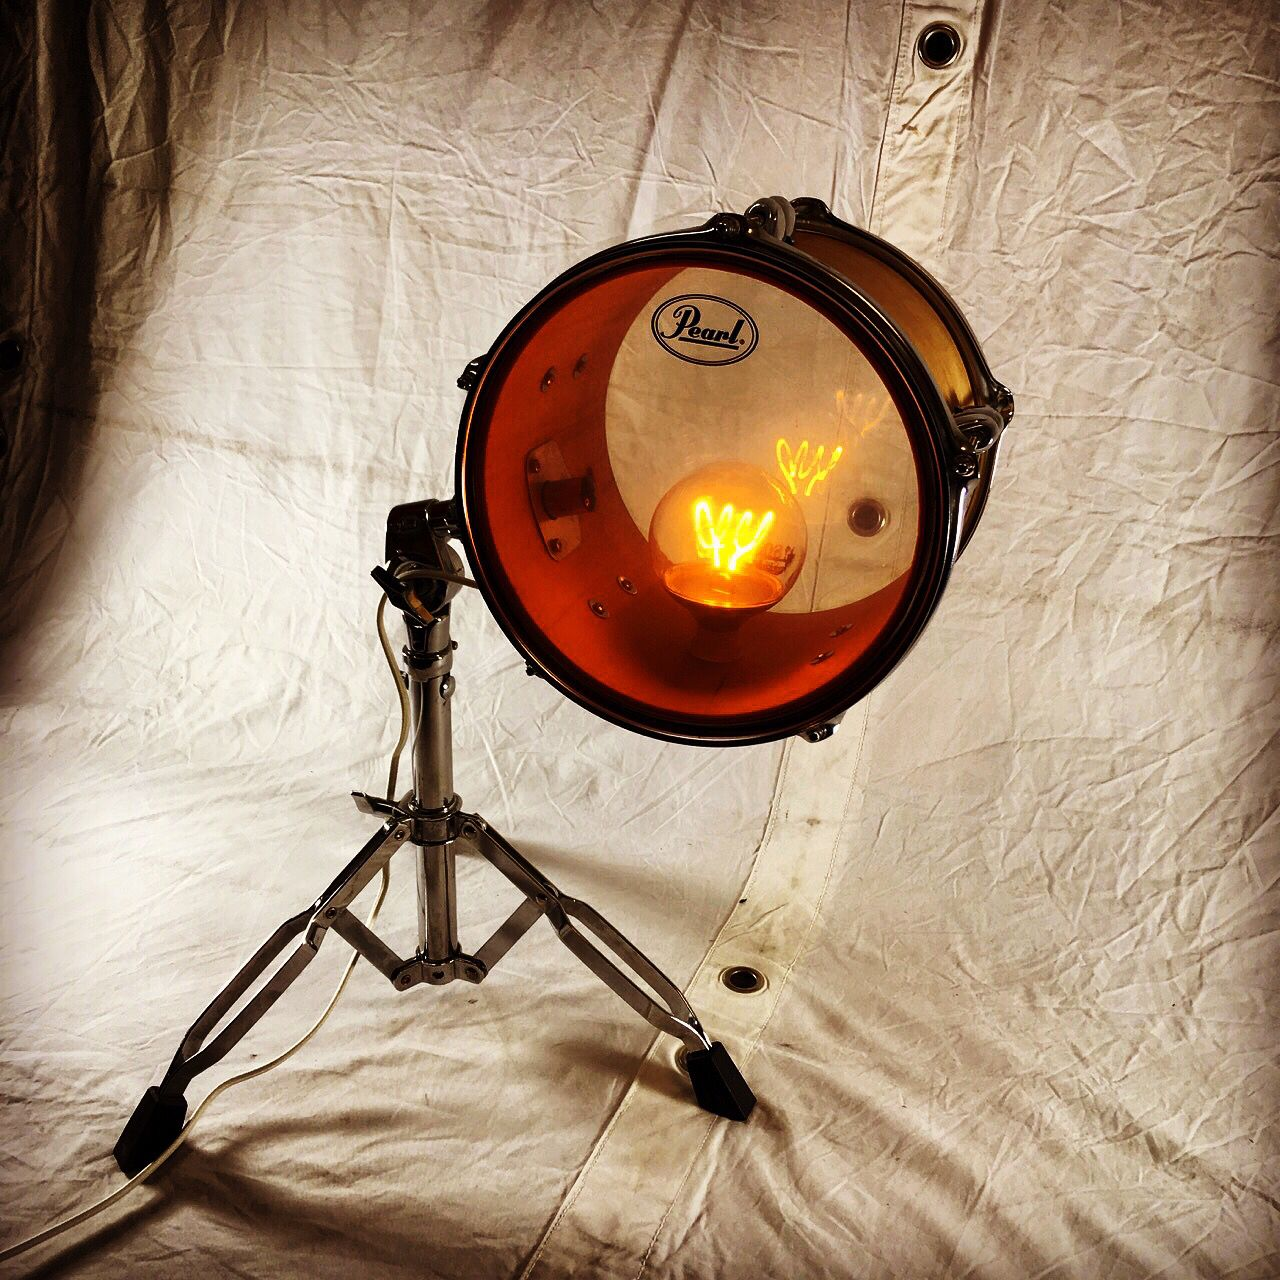 Upcycling Drum Lamp By Schlagartig Upcycling In 2020 Musikinstrumente Upcycling Beleuchtungsideen